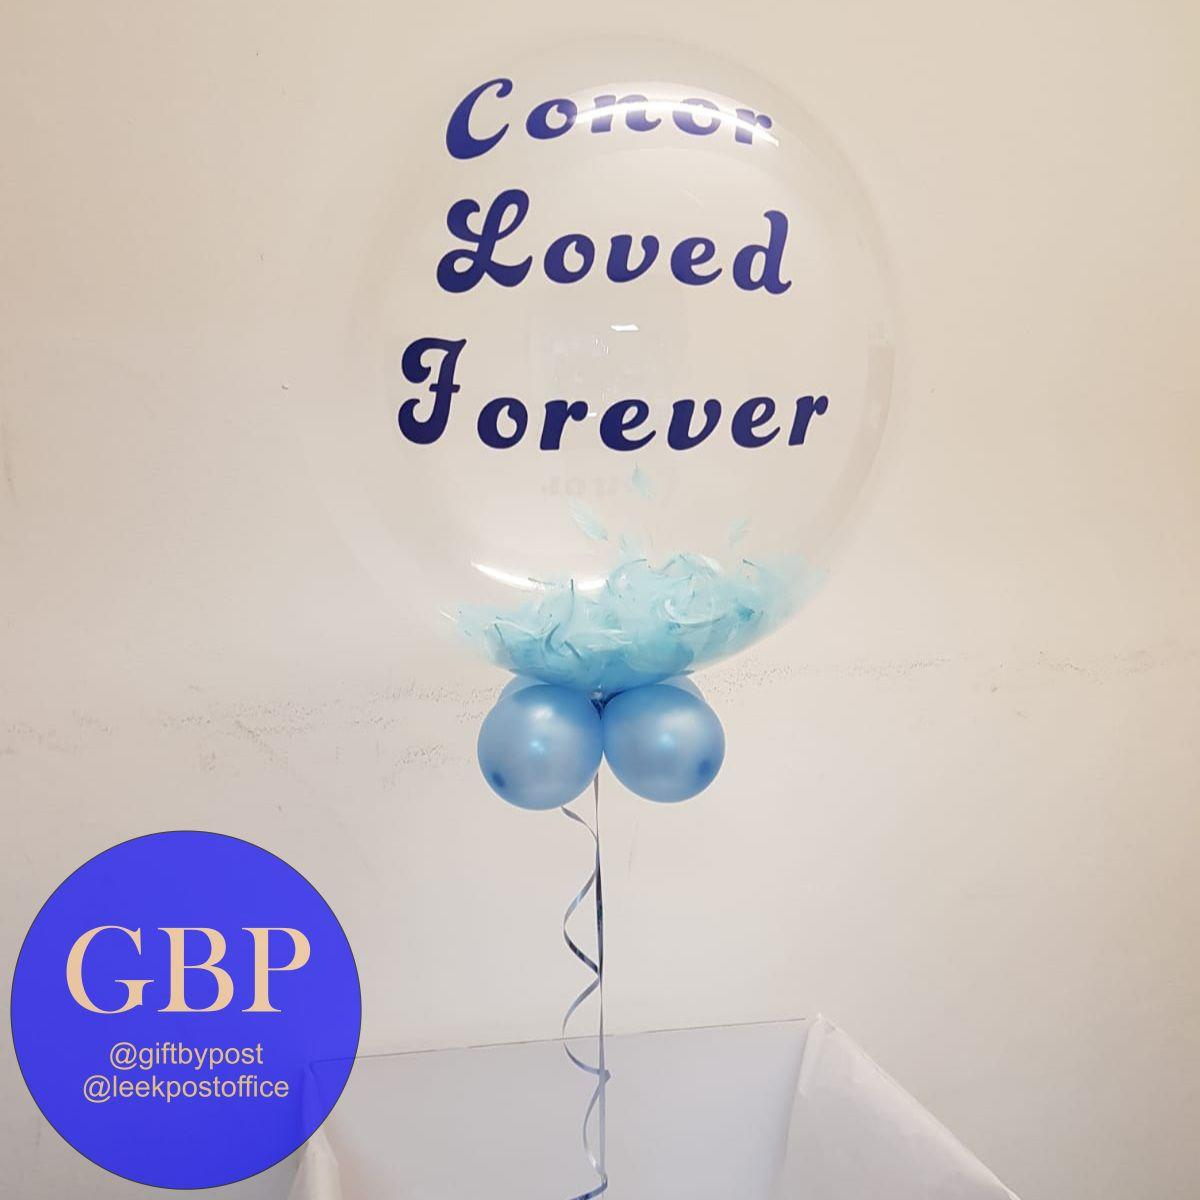 Bubble Balloon, Contains Feathers, Blue, Lost loved one, Personalised